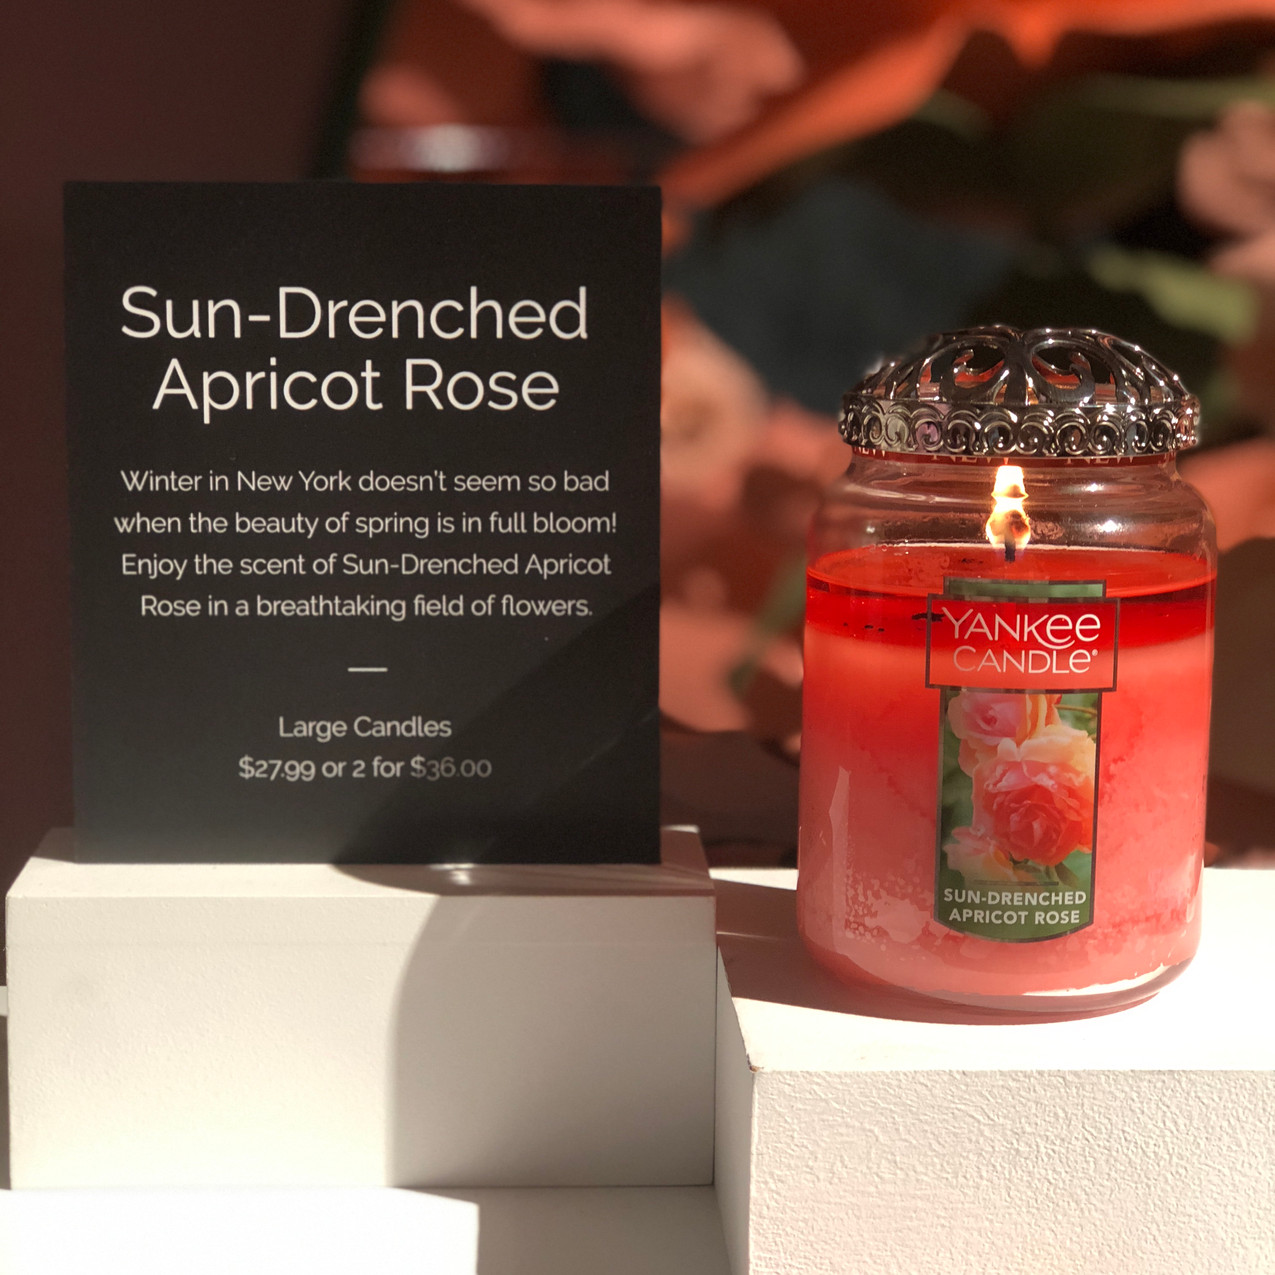 Sun-Drenched Apricot Rose- Yankee Ca